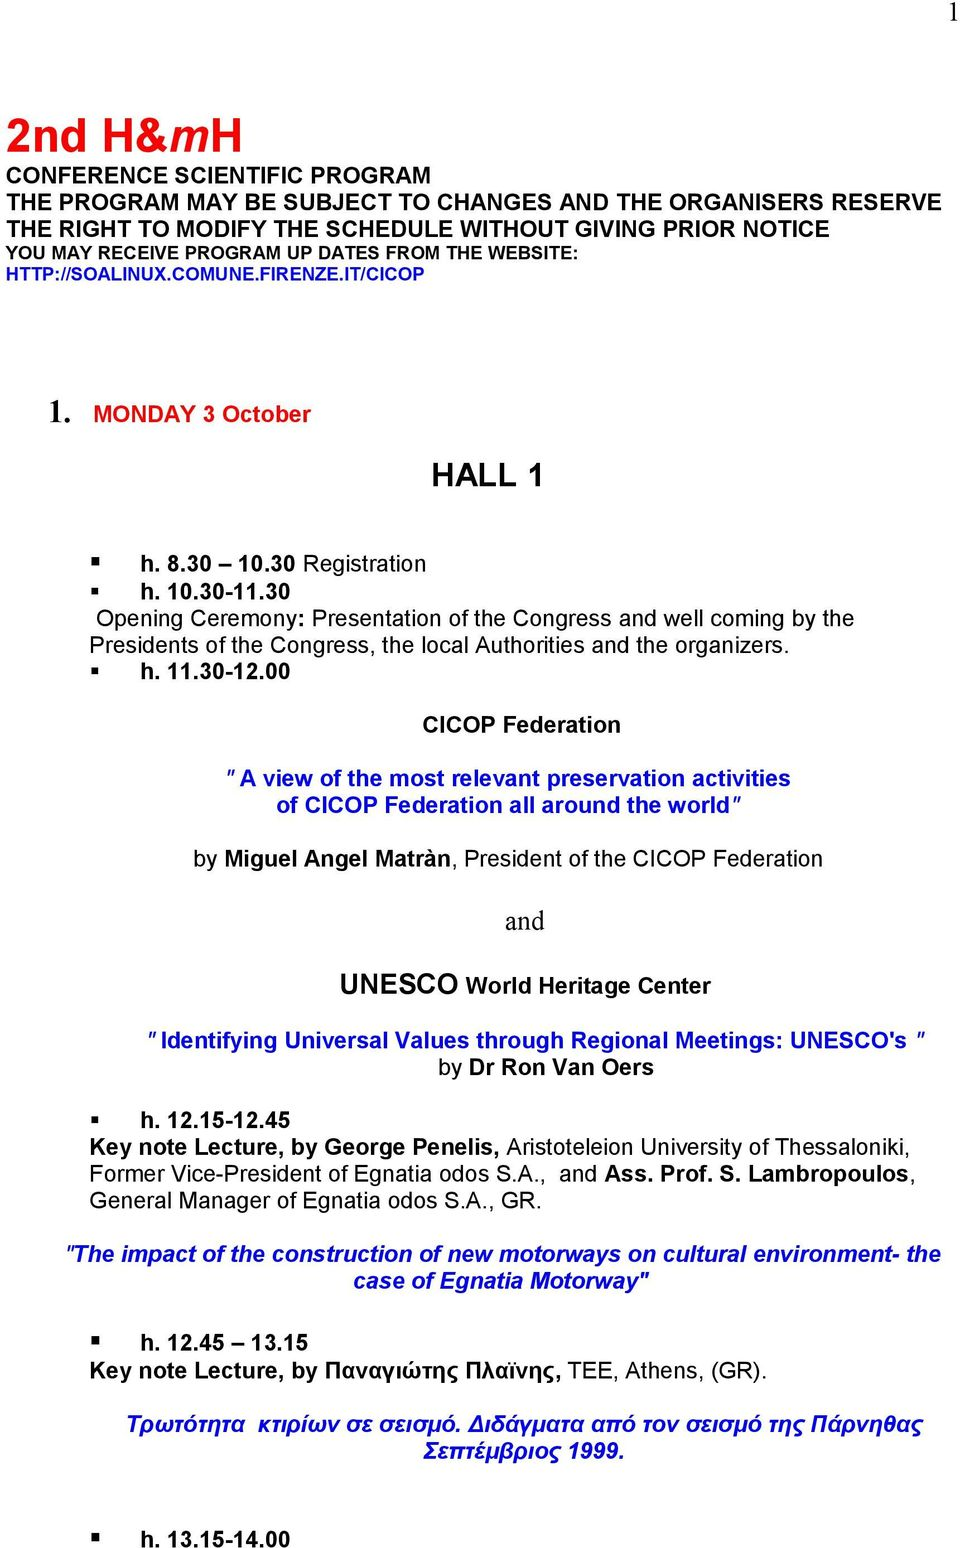 30 Opening Ceremony: Presentation of the Congress and well coming by the Presidents of the Congress, the local Authorities and the organizers. h. 11.30-12.